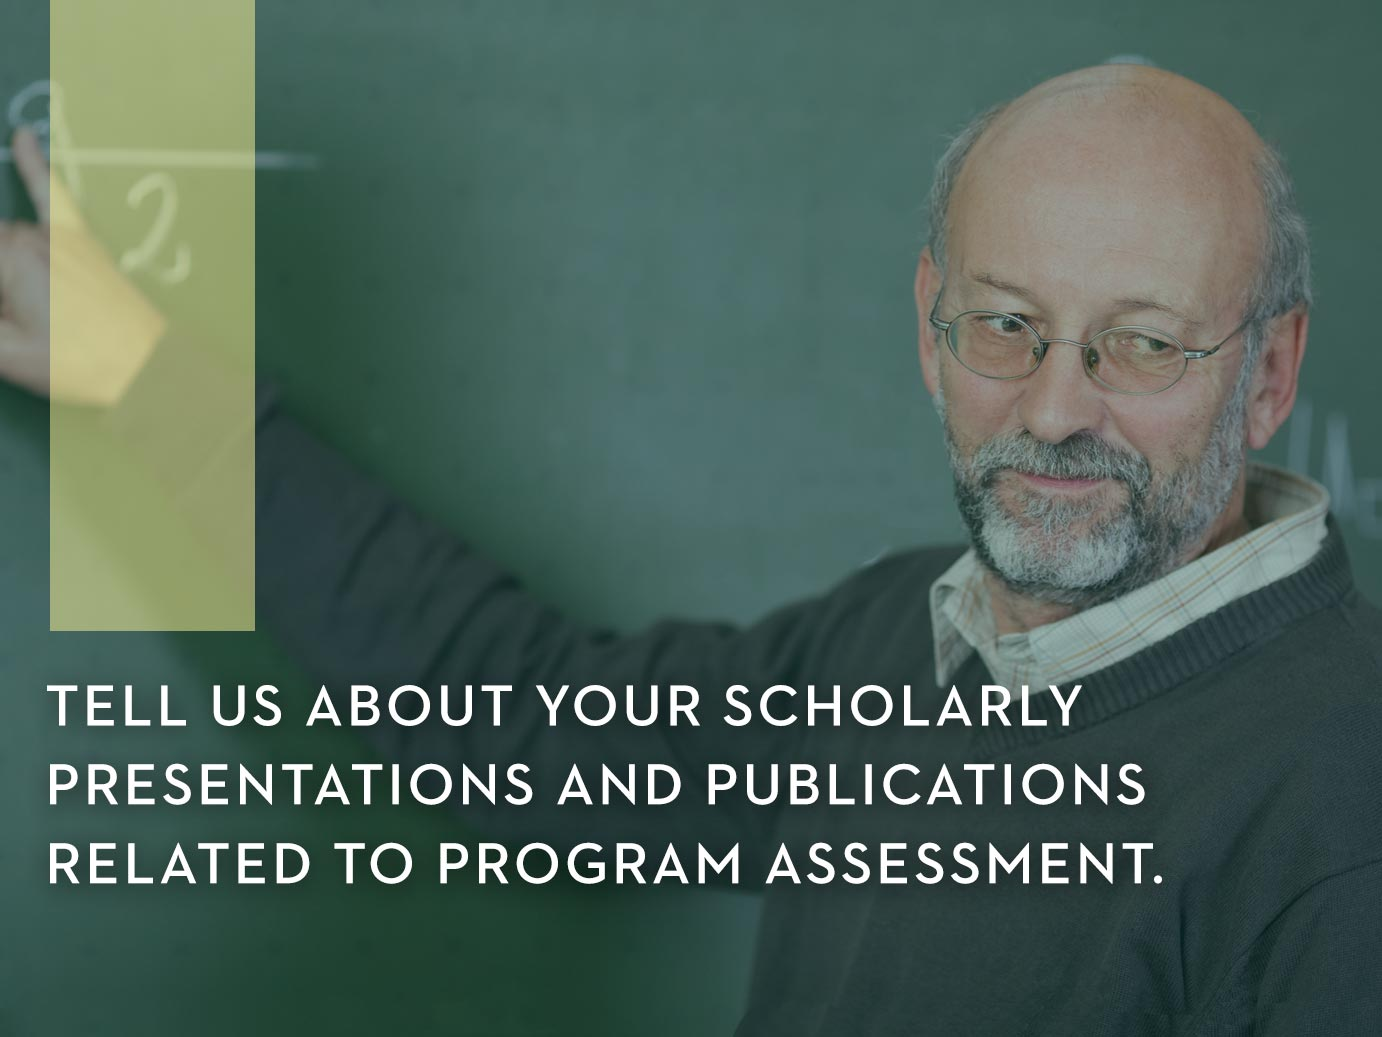 Tell us about your Wayne State scholarly presentation and publications related to assessment